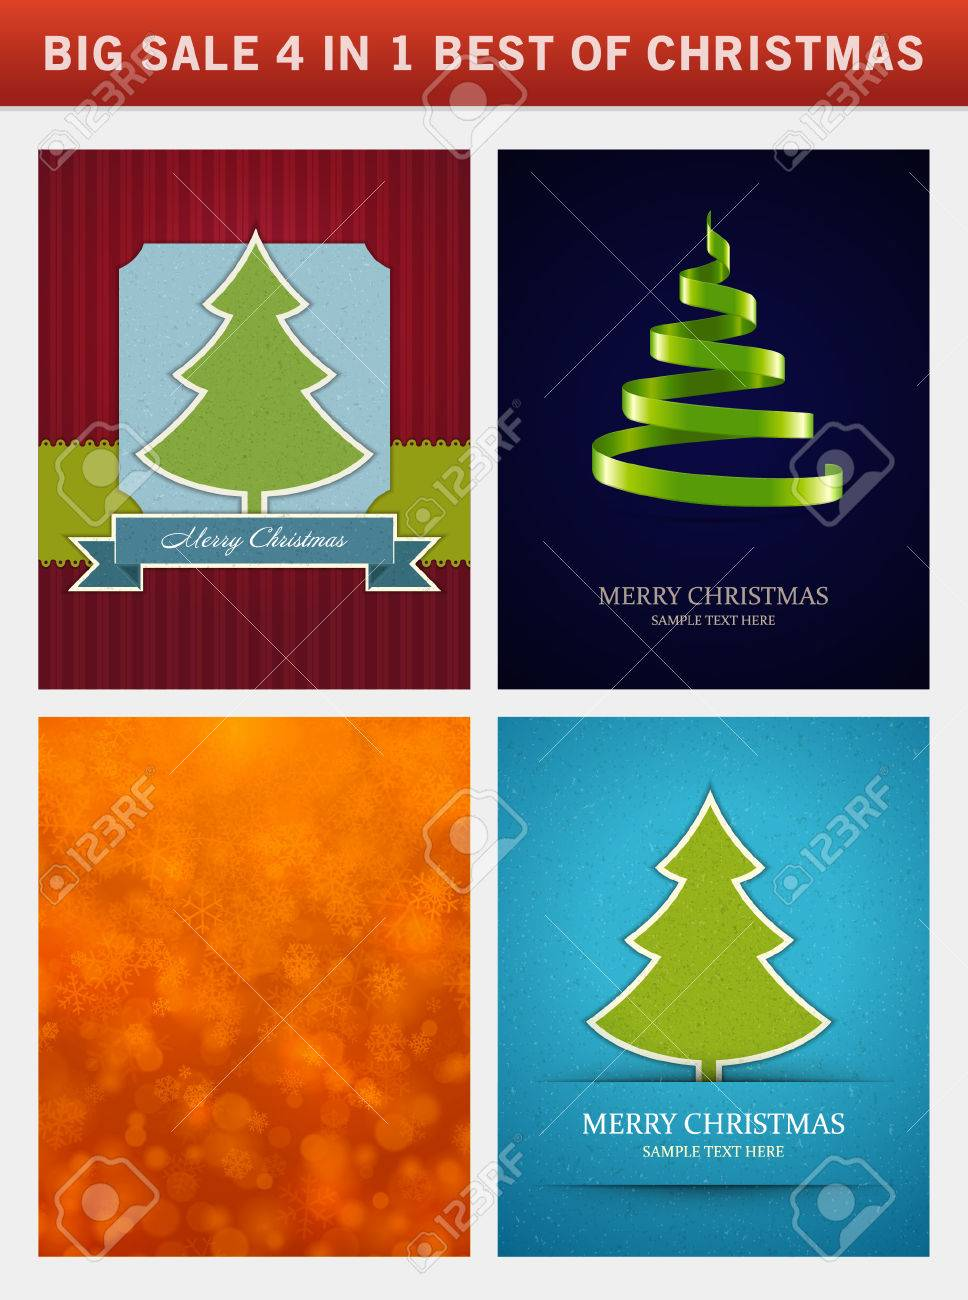 Christmas Vector Backgrounds Set Greeting Cards, Banners Or ...